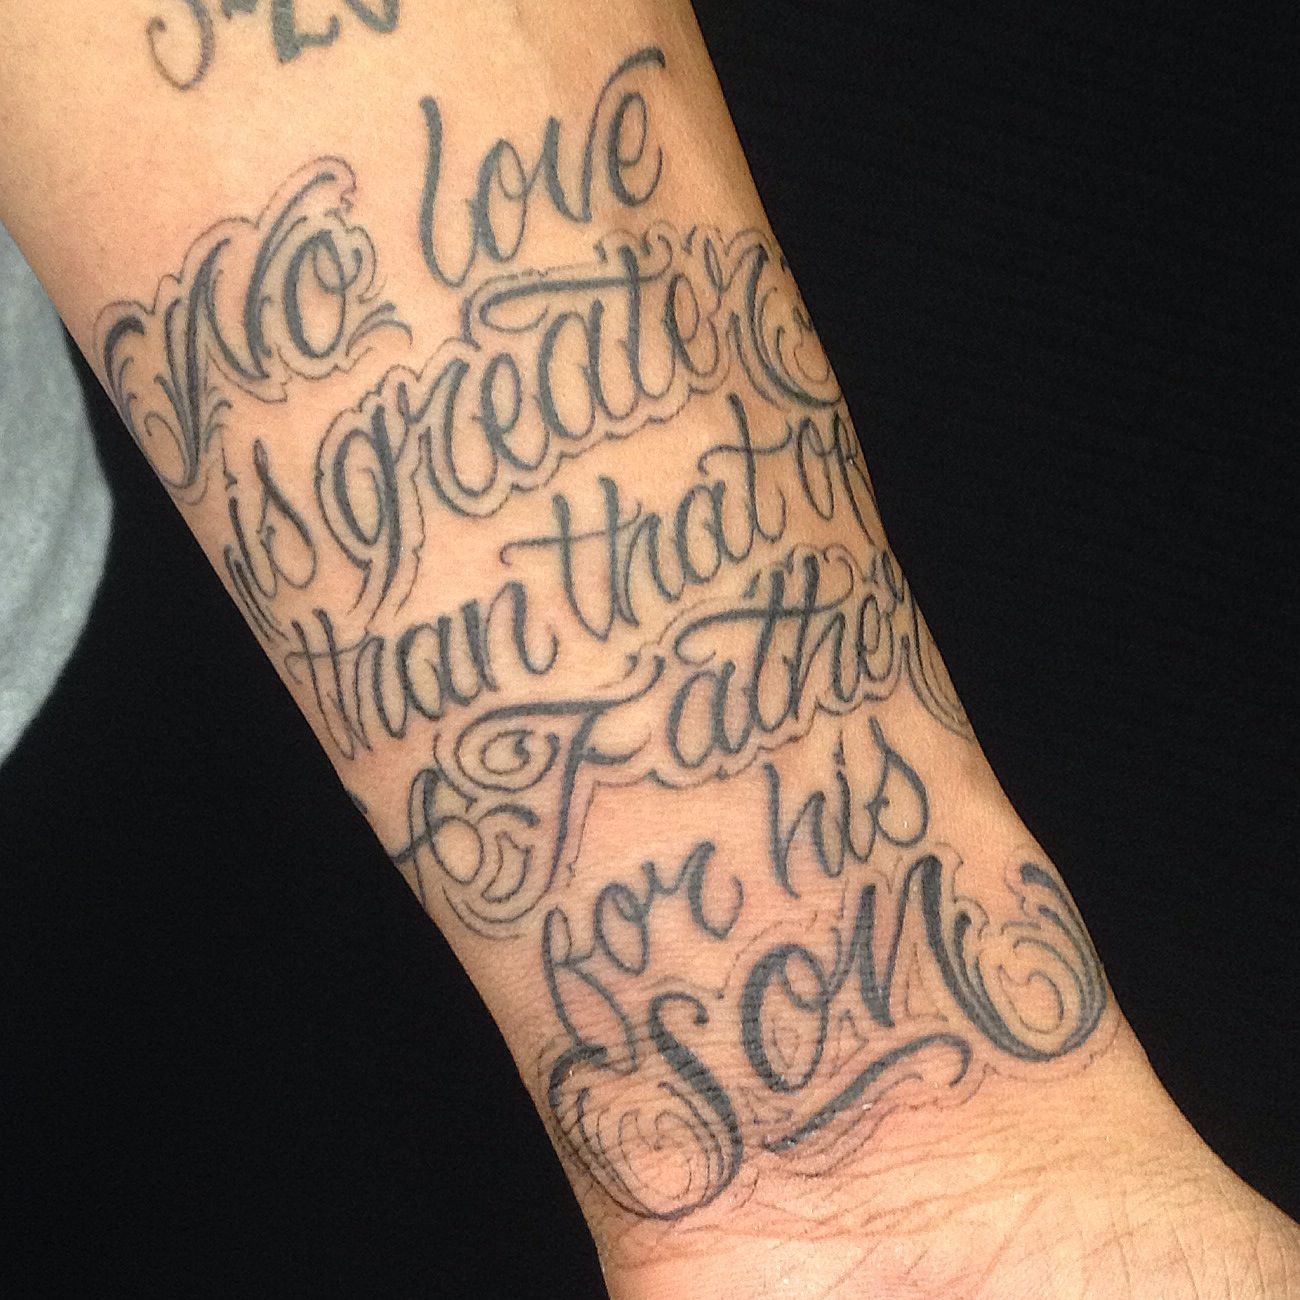 Son Tattoo Ideas: No Love Is Greater Than Of A Father For His Son